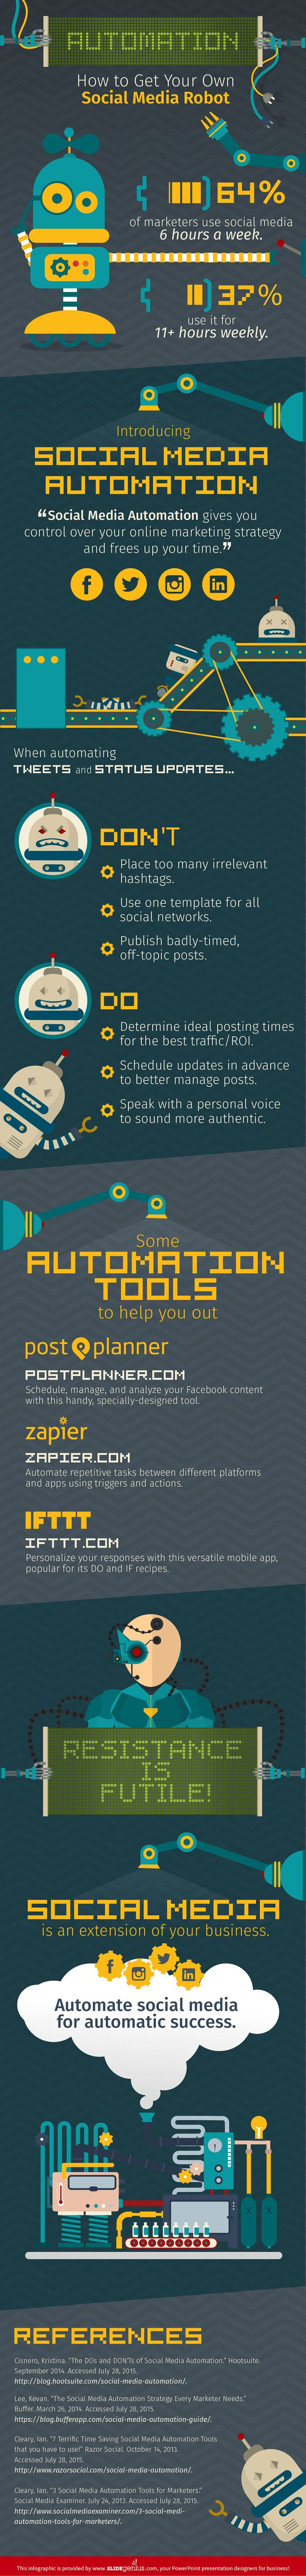 Automation - How to Get Your Own Social Media Robot - infographic